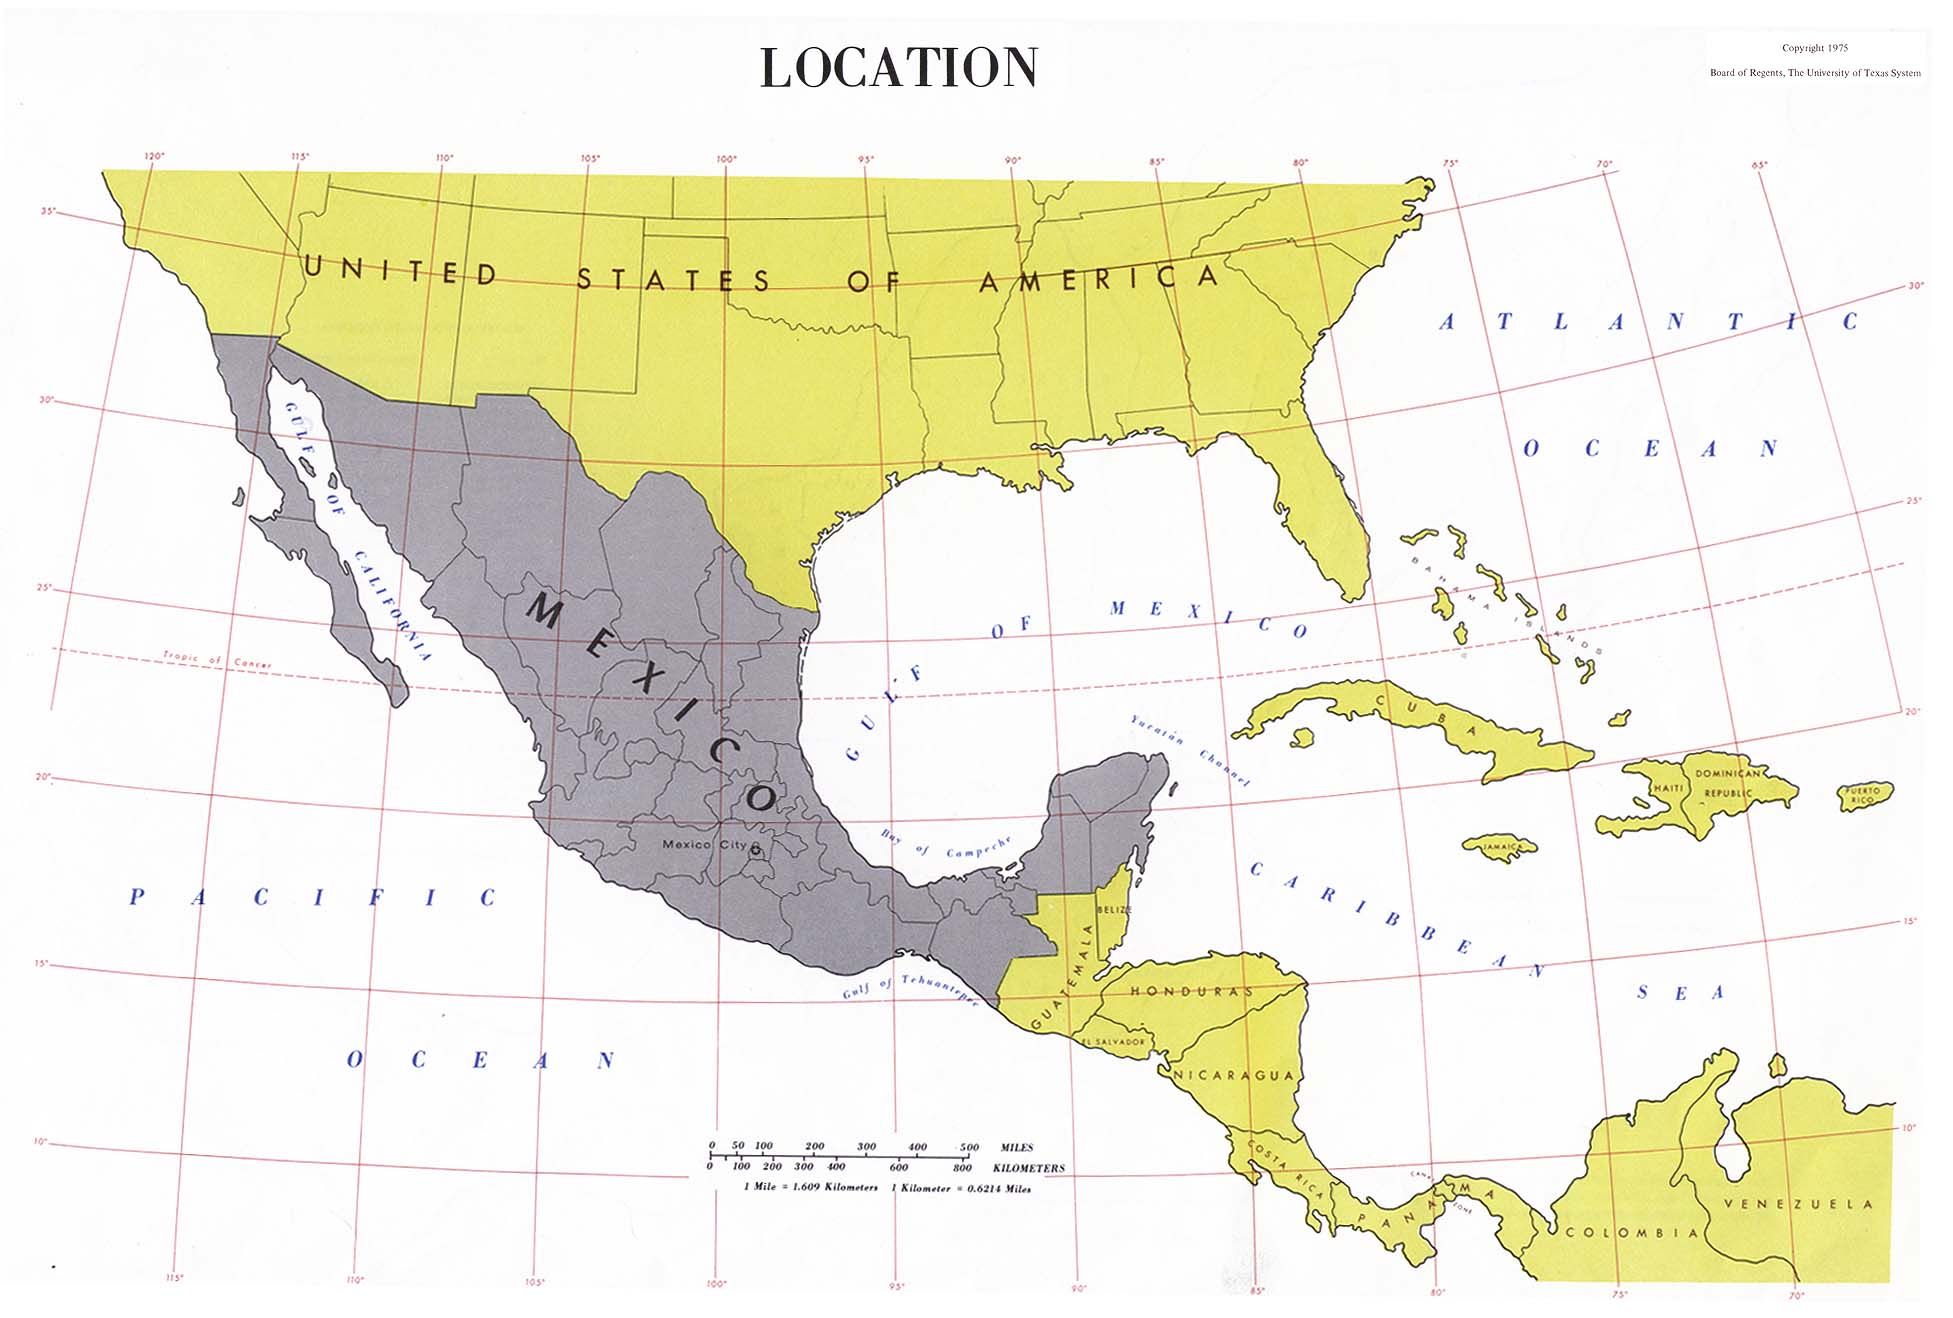 Atlas of Mexico - Perry-Castañeda Map Collection - UT ... on world map with mexico, map mexican colors, location of ixtapa in mexico, us and mexico, map from mexico, madero mexico, china and mexico, map to mexico, map of mexico, carretero mexico, usa canada mexico, 7 states of mexico, map venezuela flag, google maps mexico, us state that borders mexico, geo mexico, canada and mexico, map from cancun to belize, map with title,